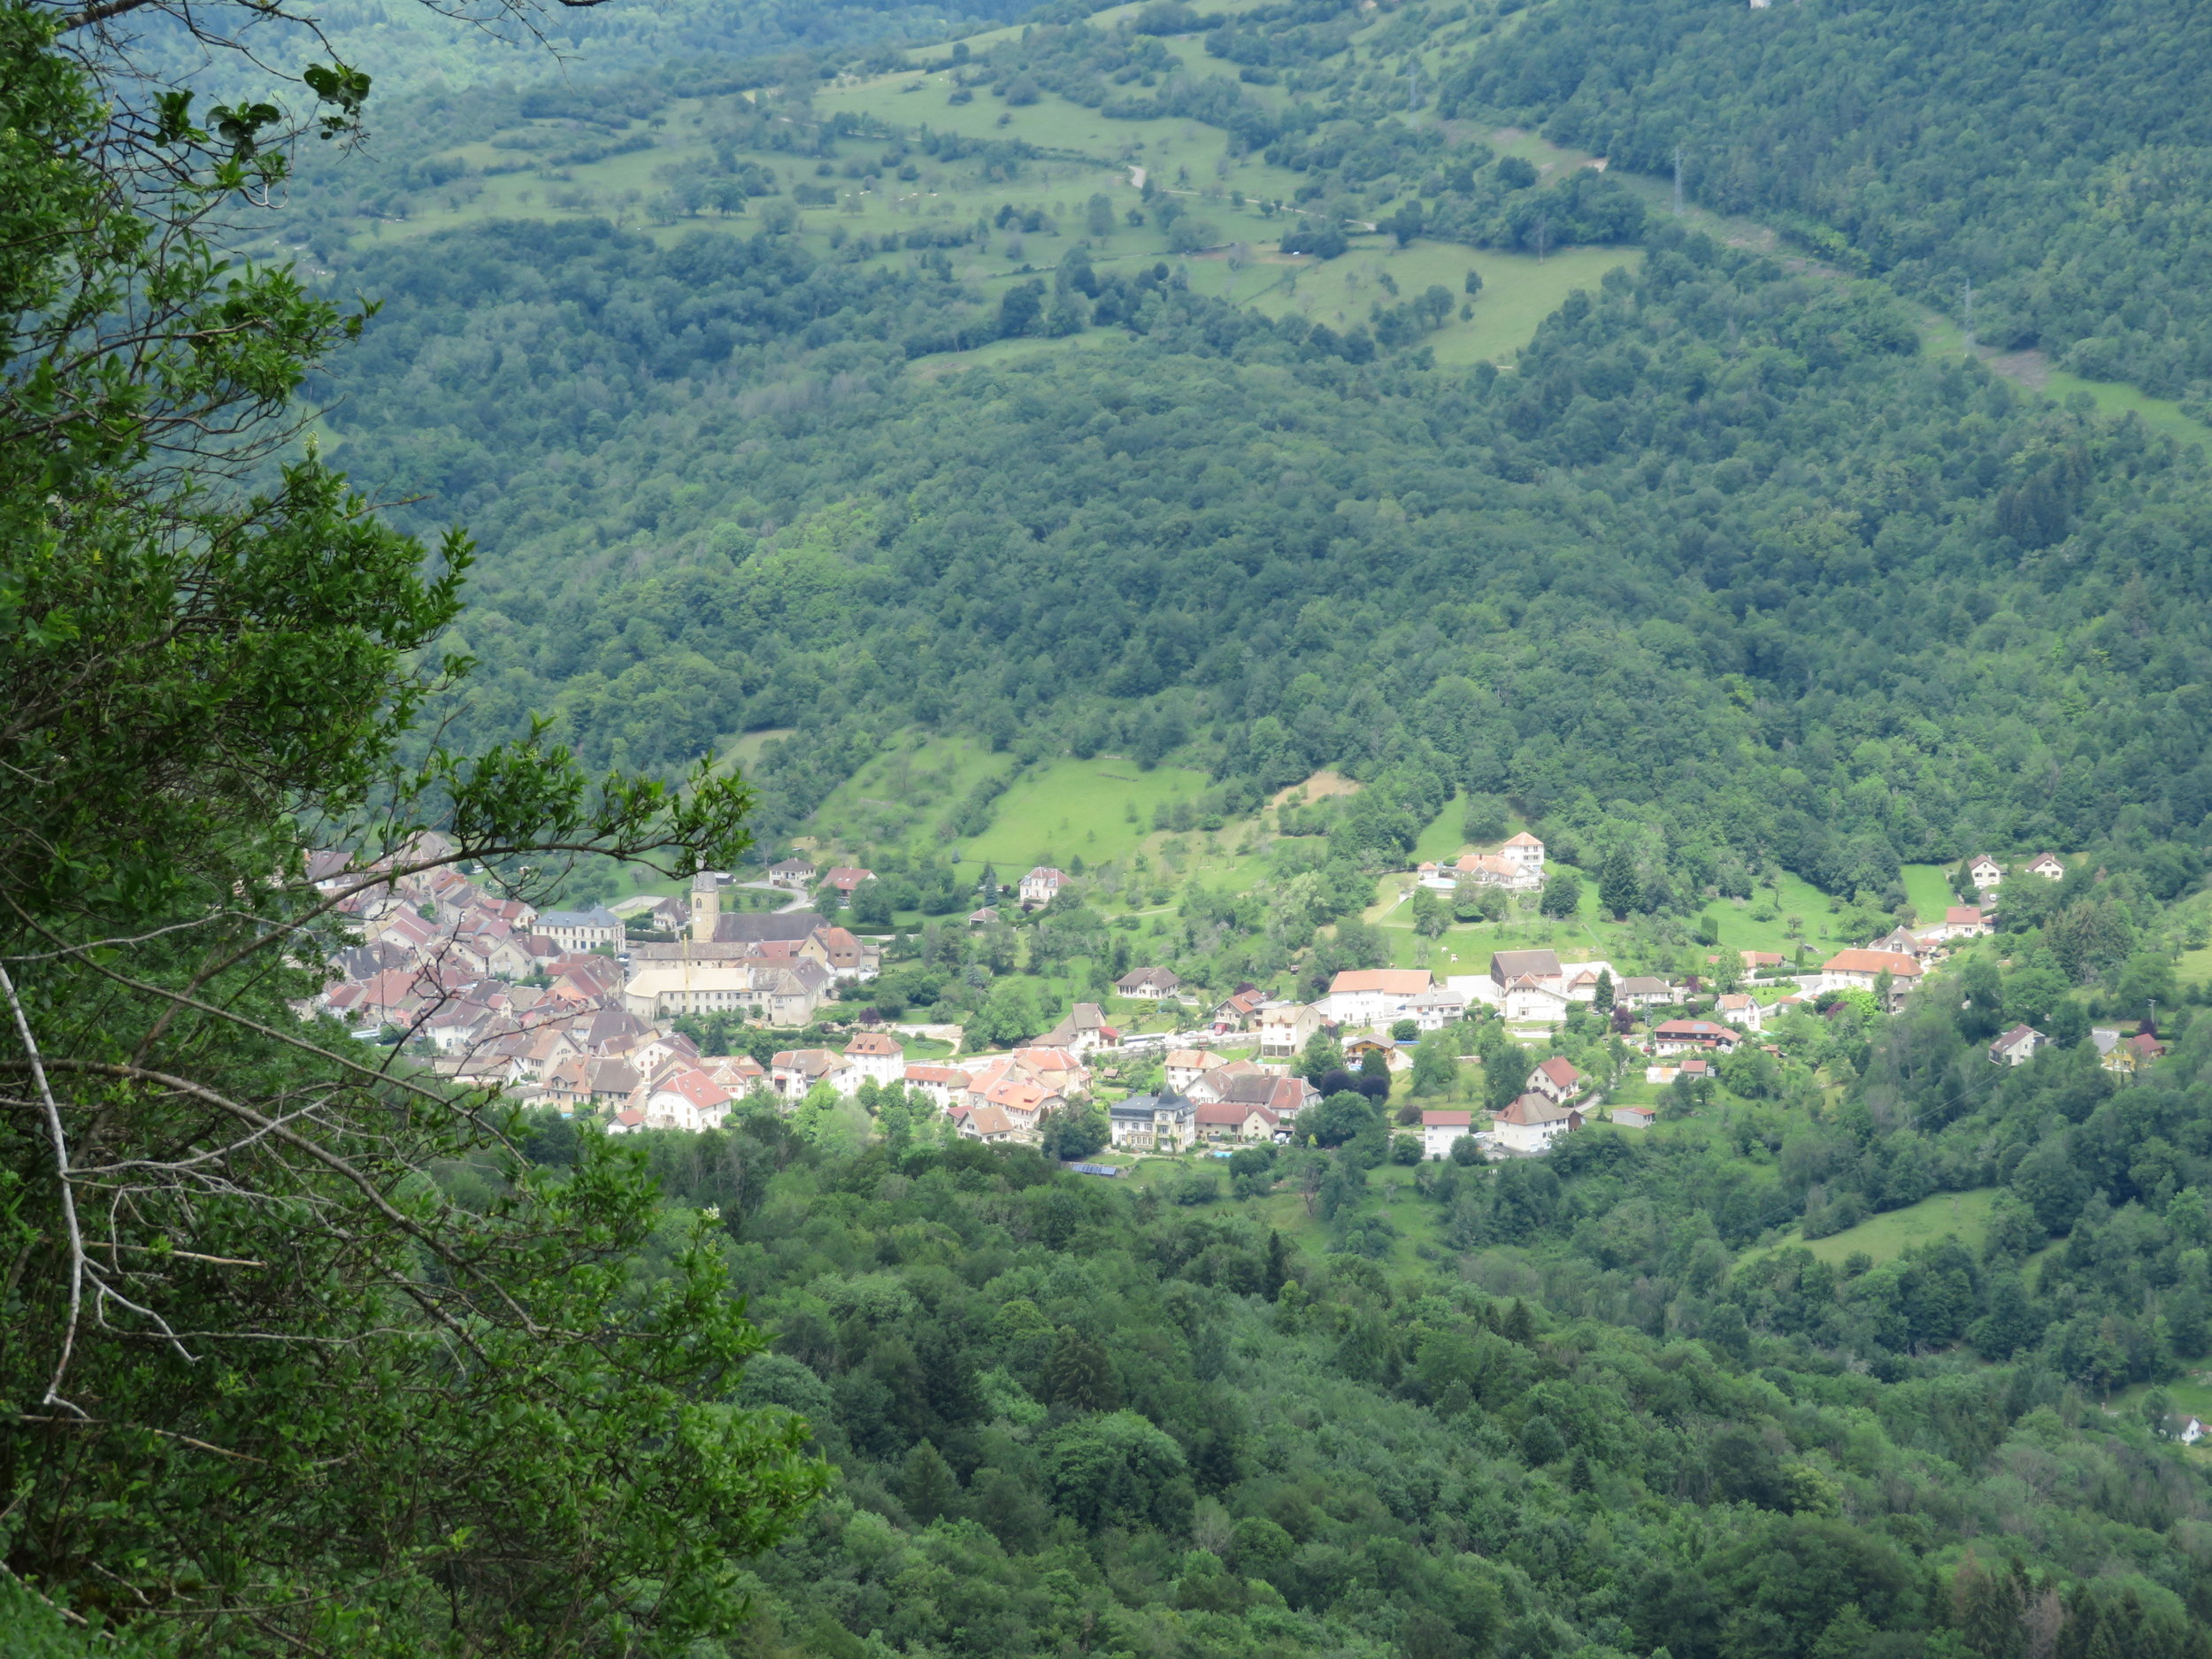 We climbed to the top of Les Gorges de Noailles to an overlook of the valley below. What a view! That tiny village below was our destination for the day, Mouthier Haute Pierre.